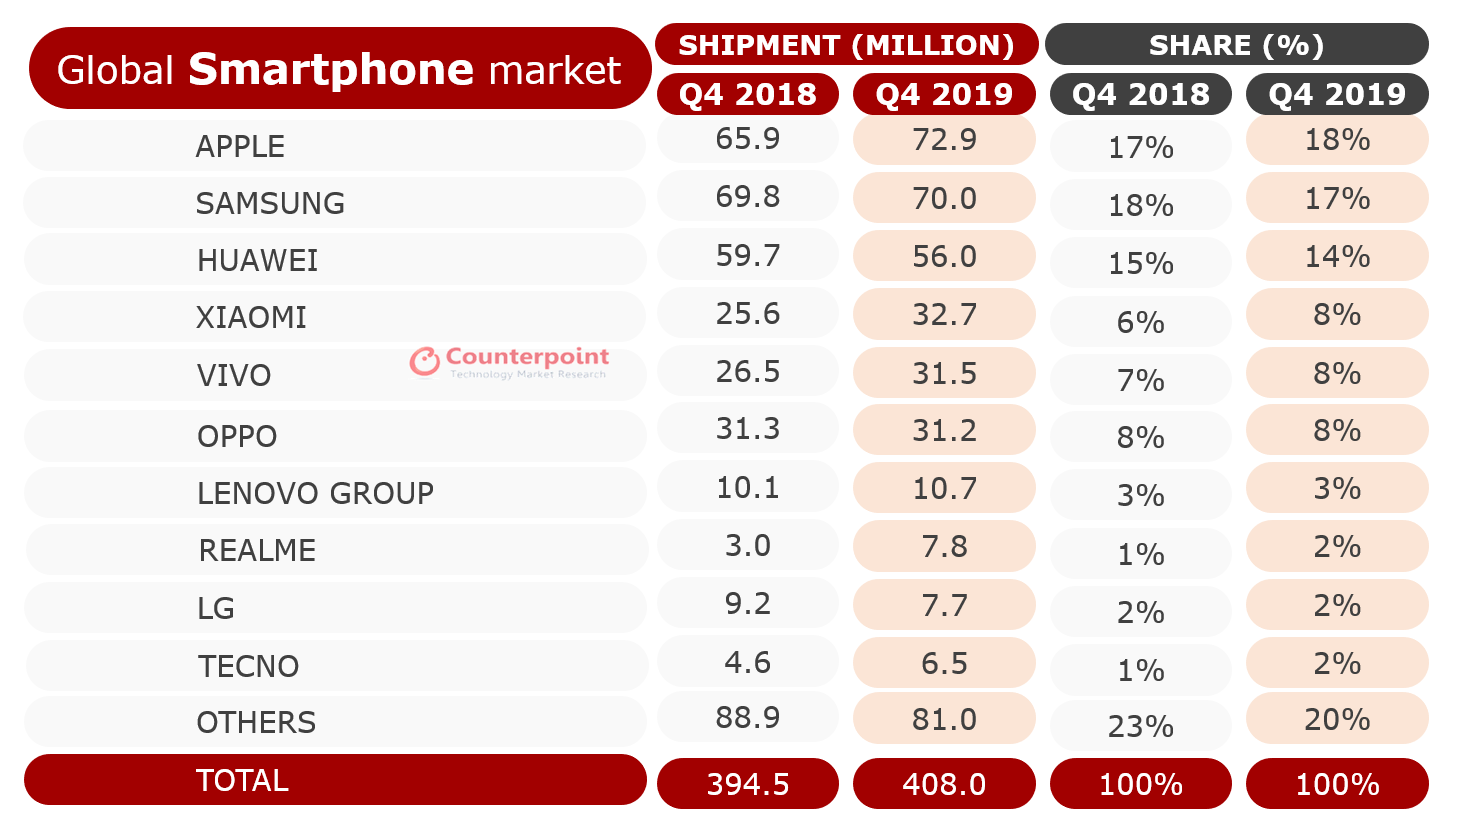 Counterpoint Smartphone Shipment Market Share Q4 2018 and Q4 2019